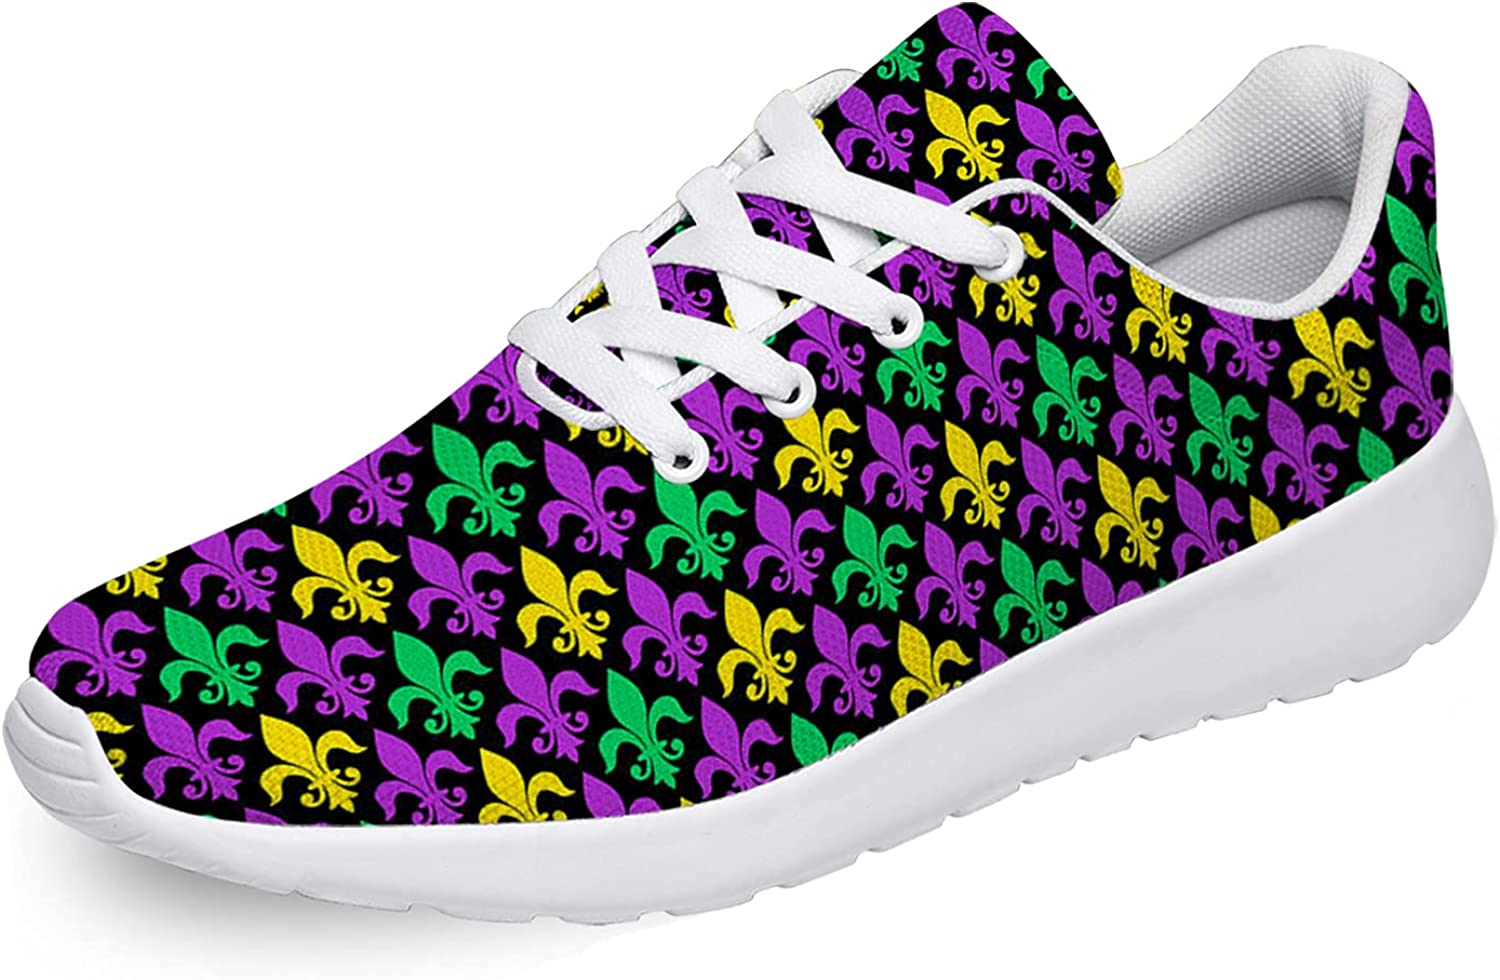 Mardi Max 75% OFF Gras Shoes for Men Breathable Lightweight Cas Opening large release sale Women Custom